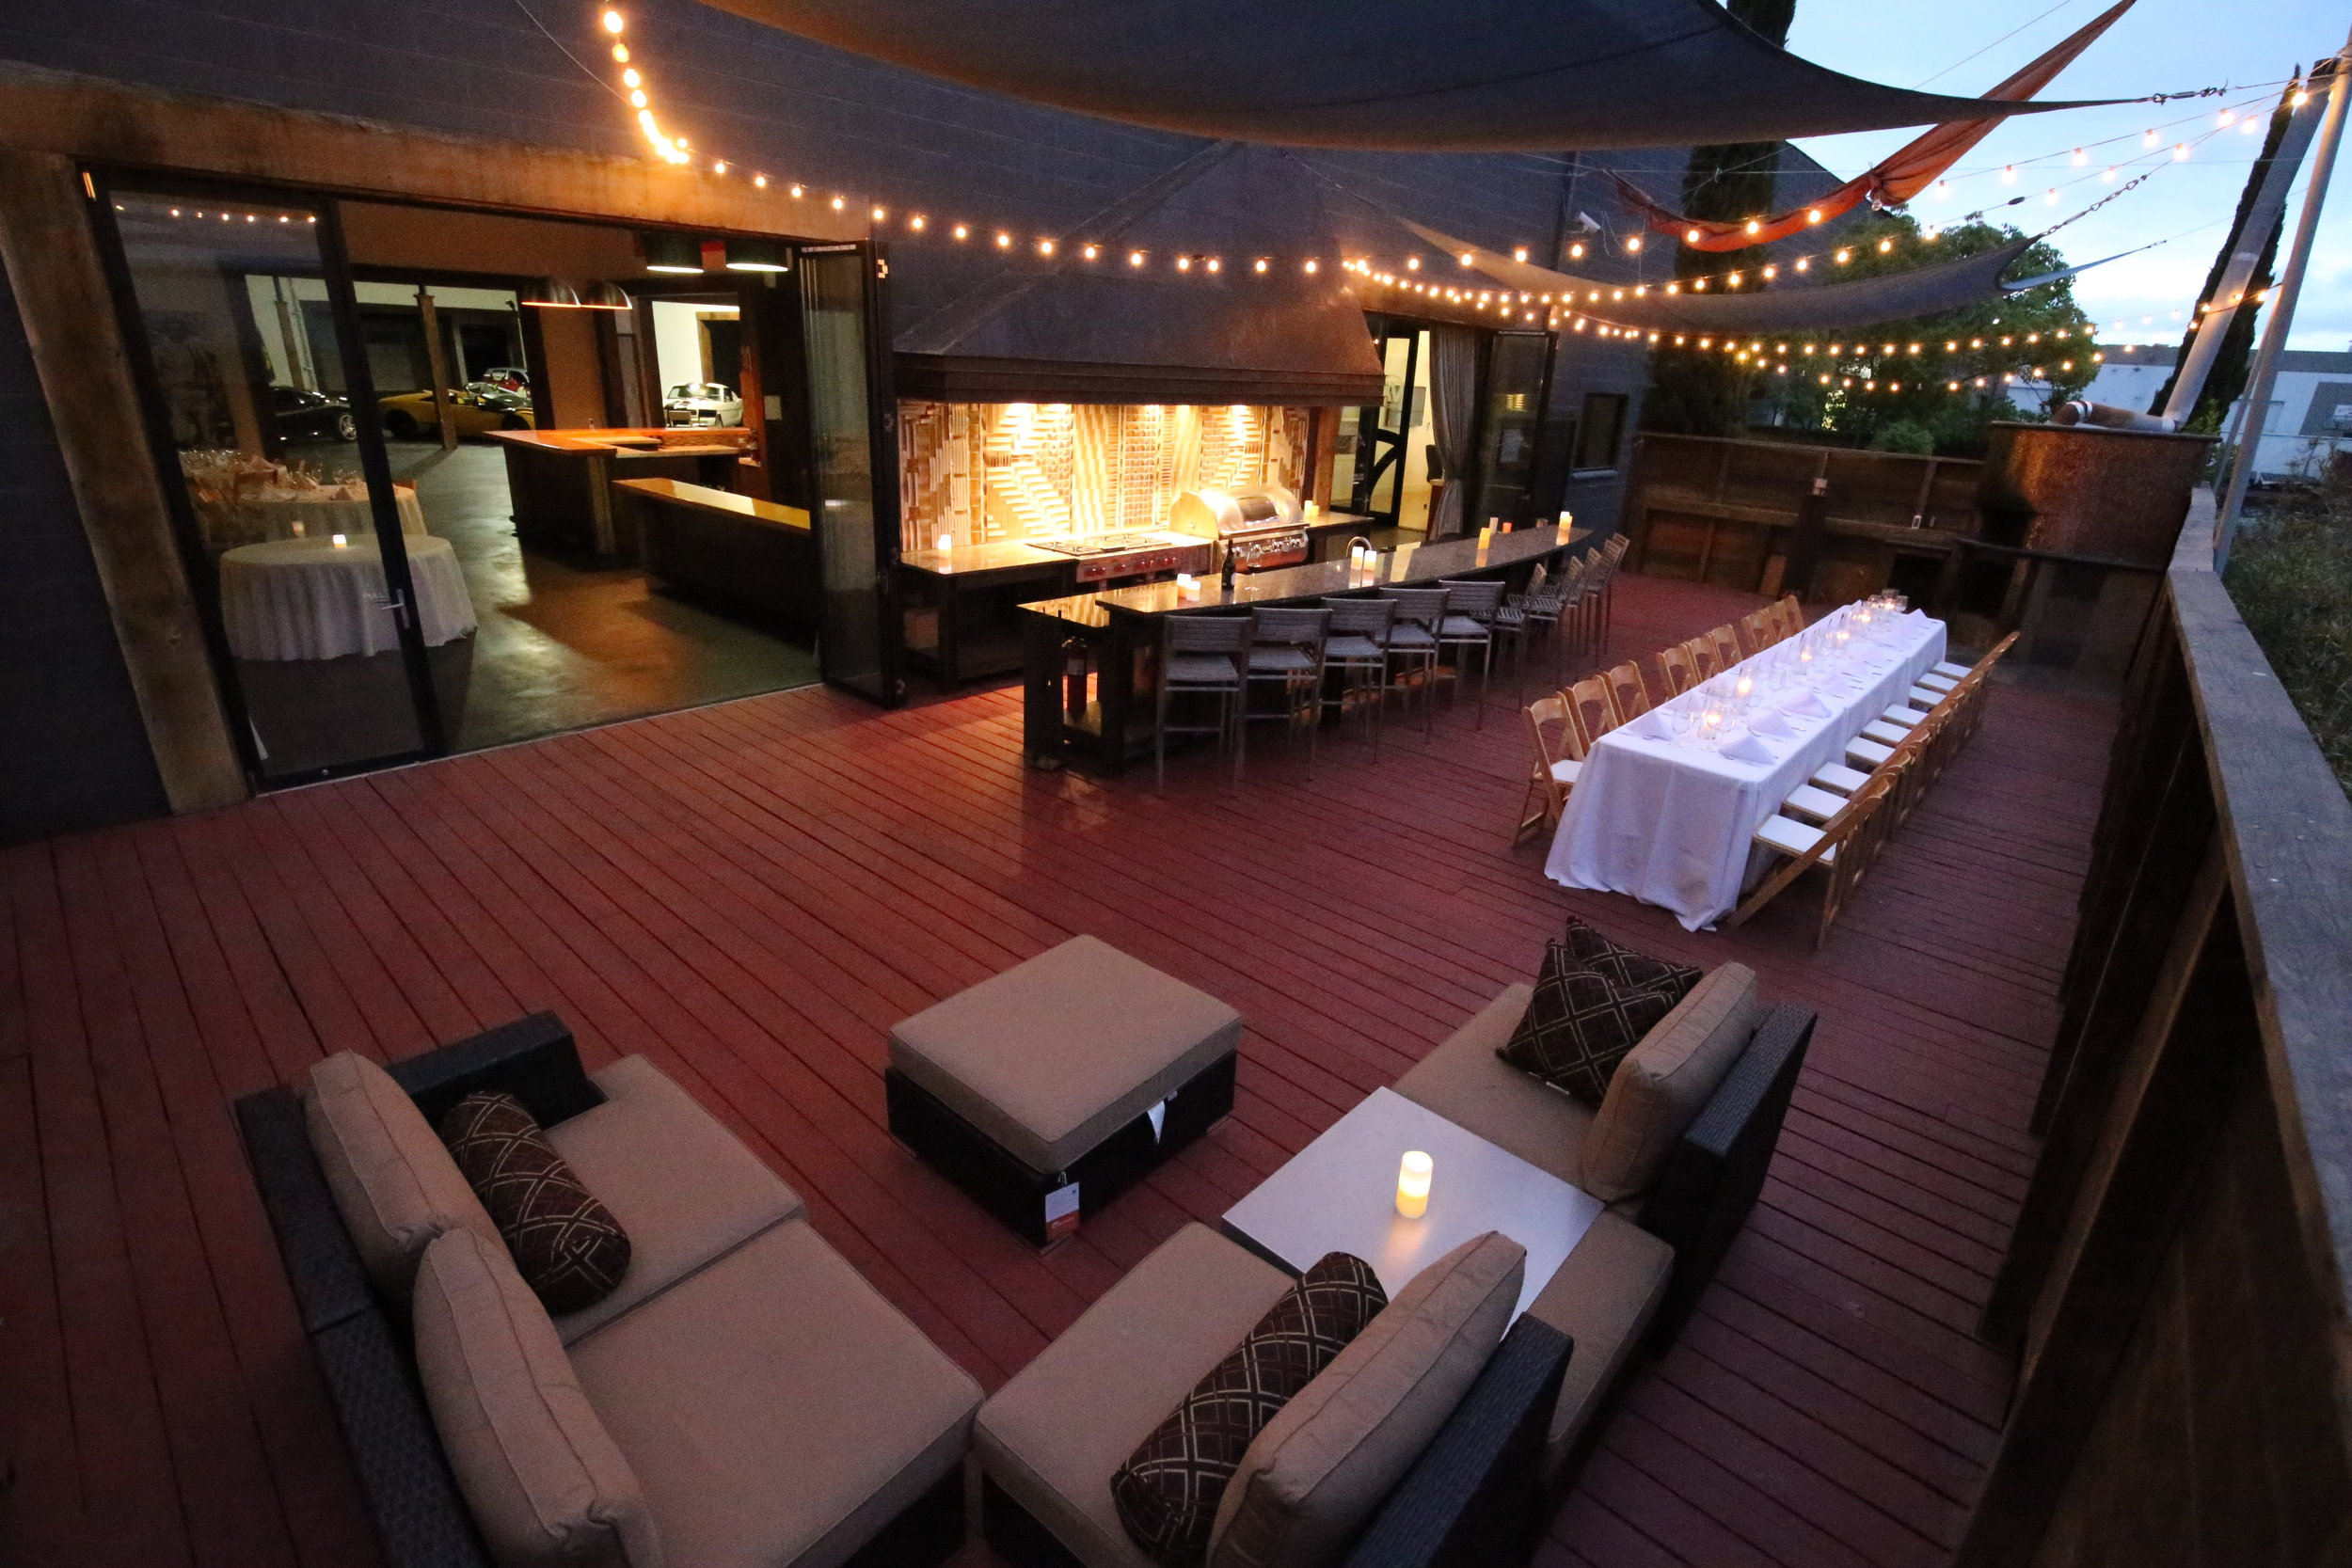 Patio Set Up for Private Dinner